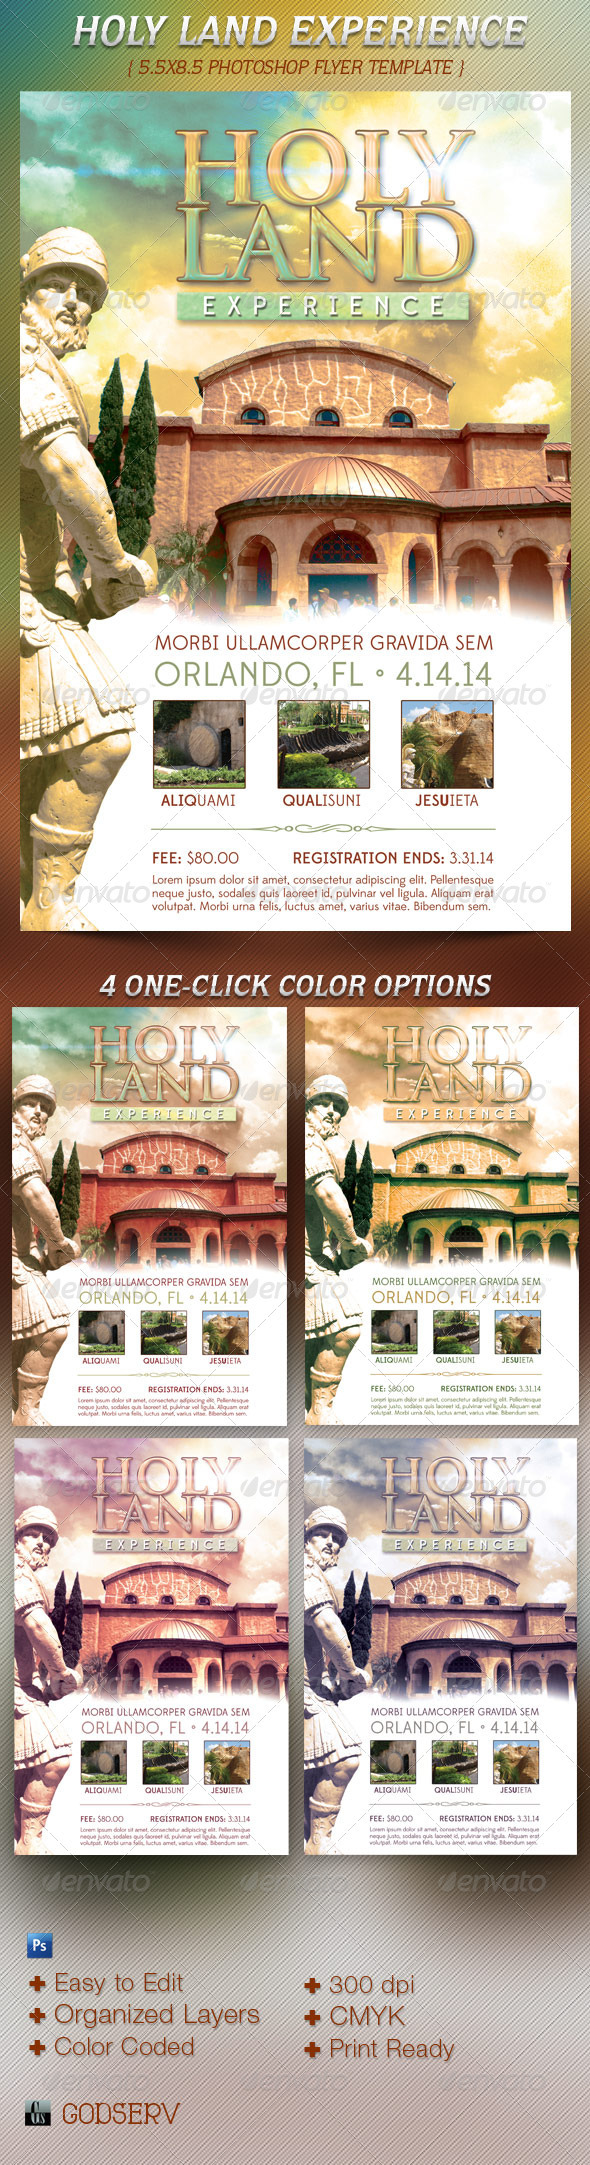 Holy Land Experience Flyer Template - Church Flyers